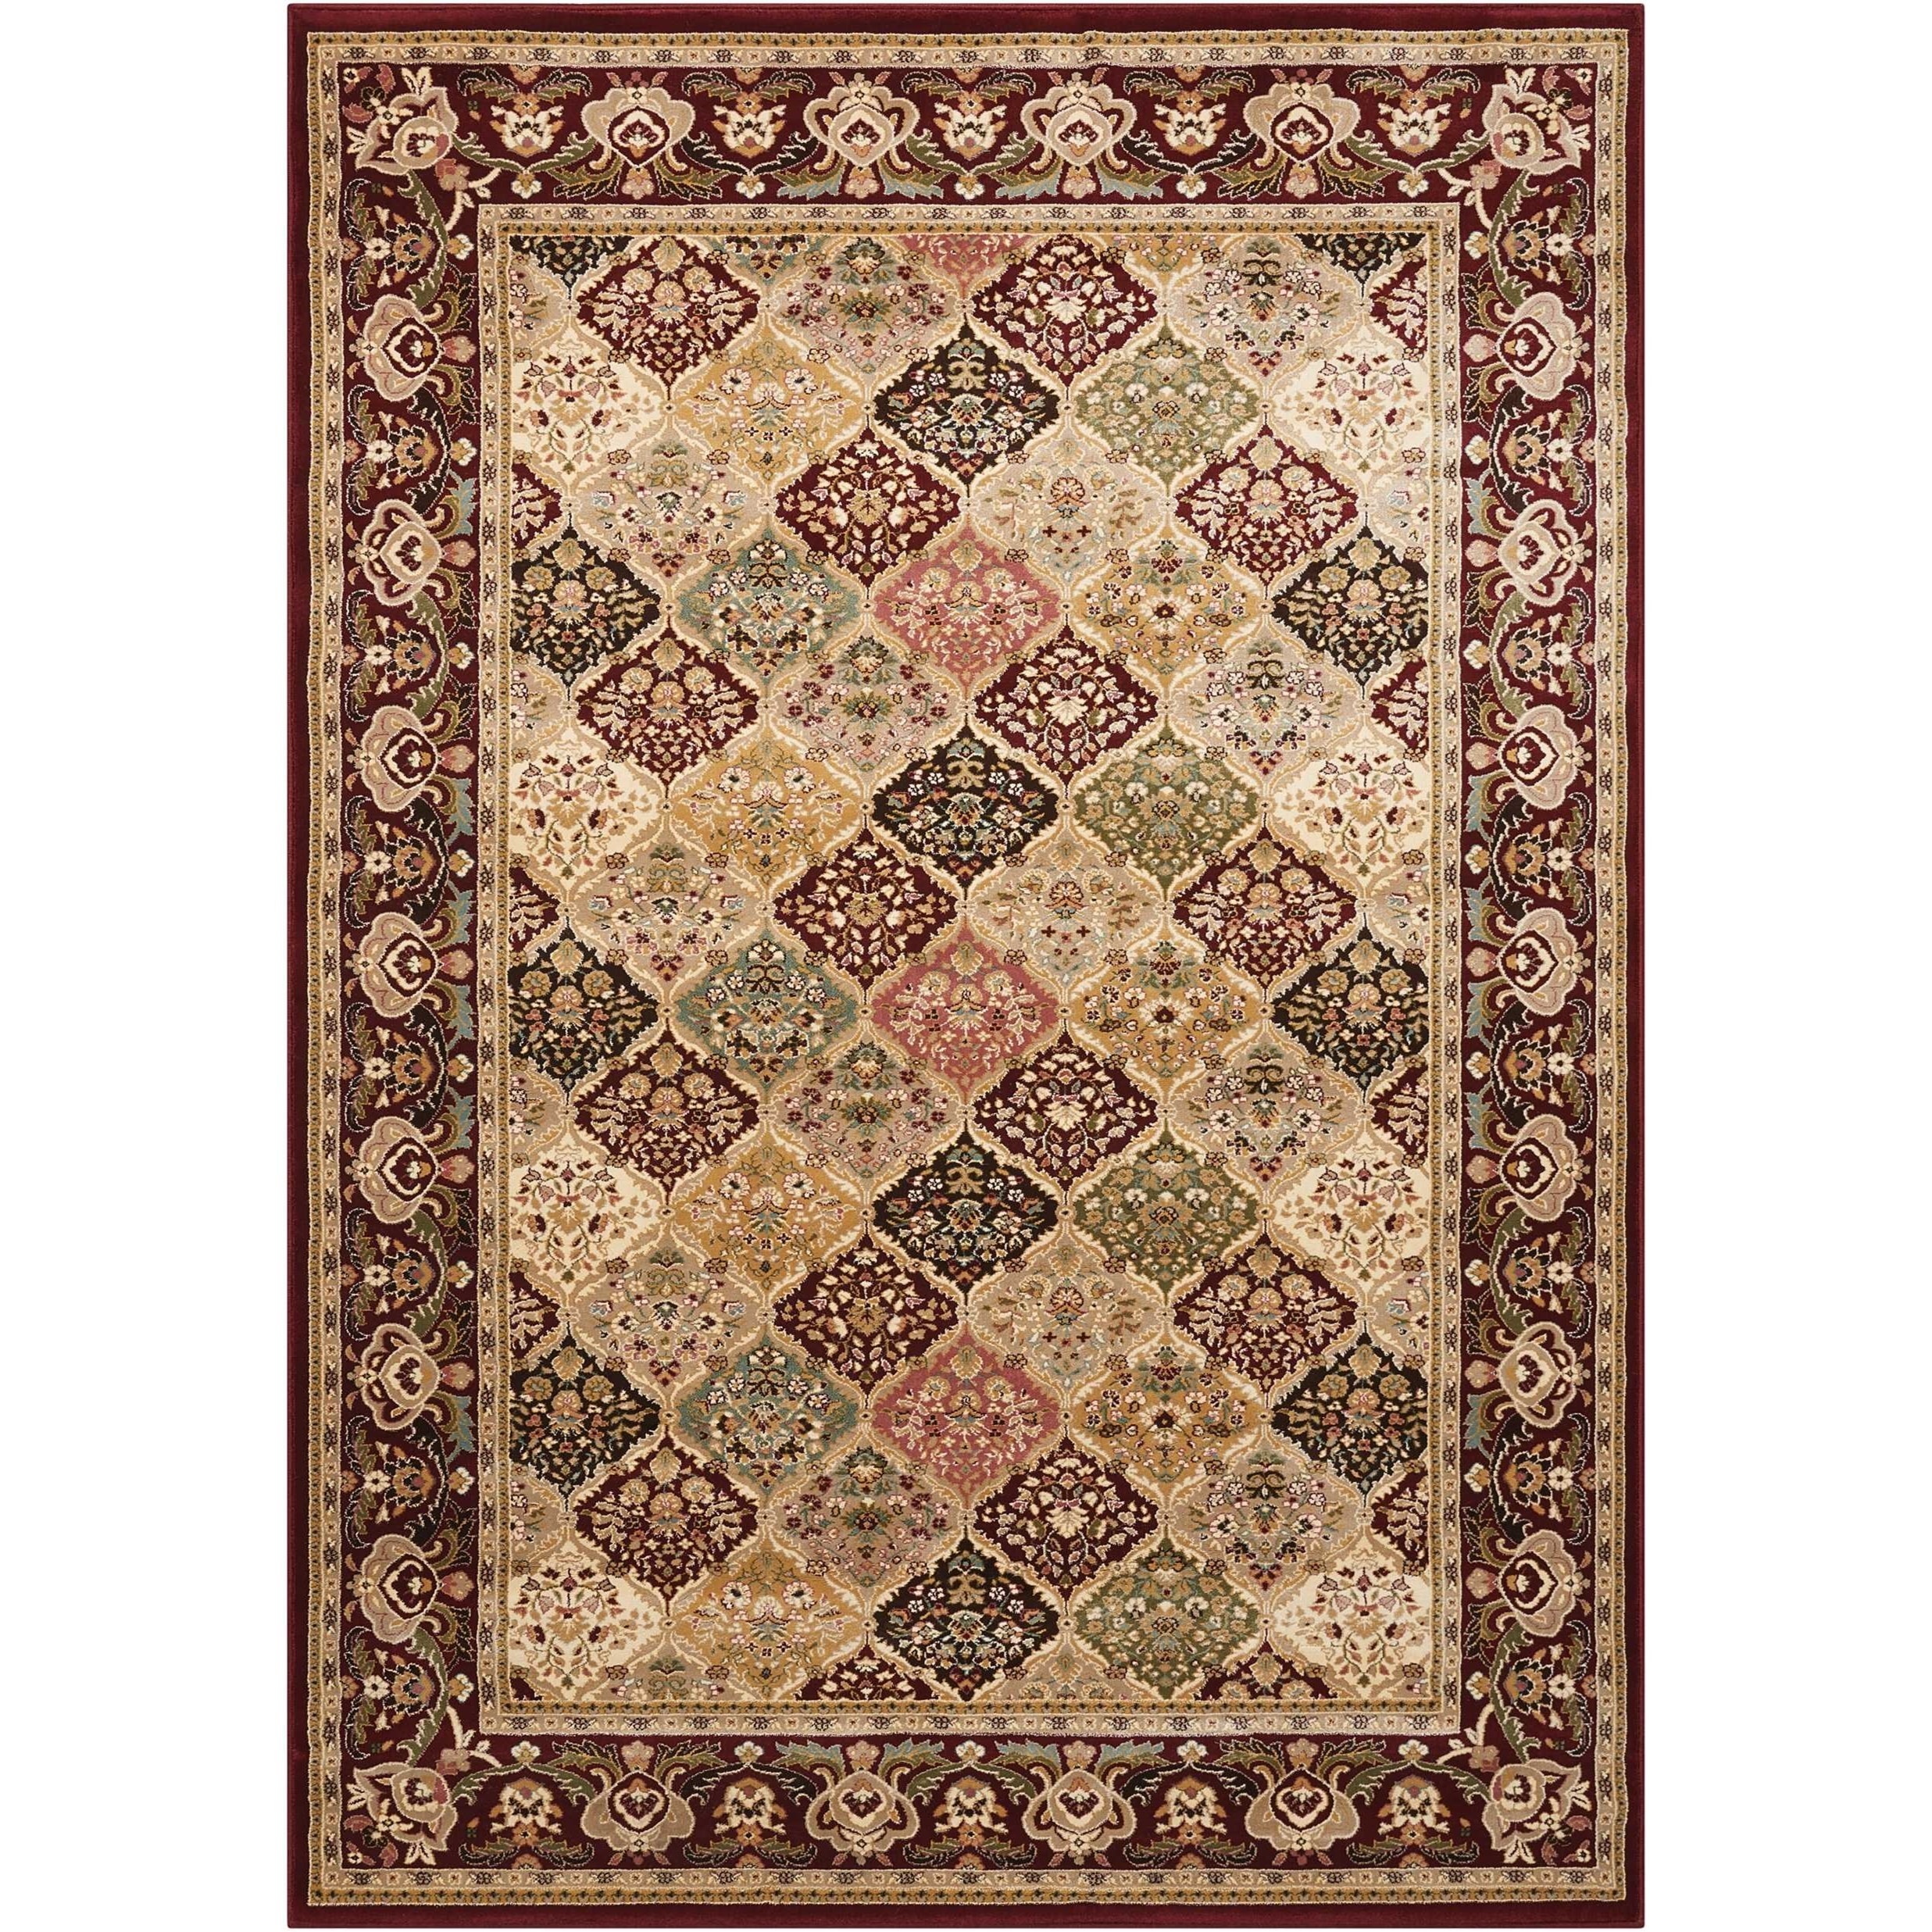 "Antiquities 9'10"" x 13'2"" Rug by kathy ireland Home by Nourison at Home Collections Furniture"